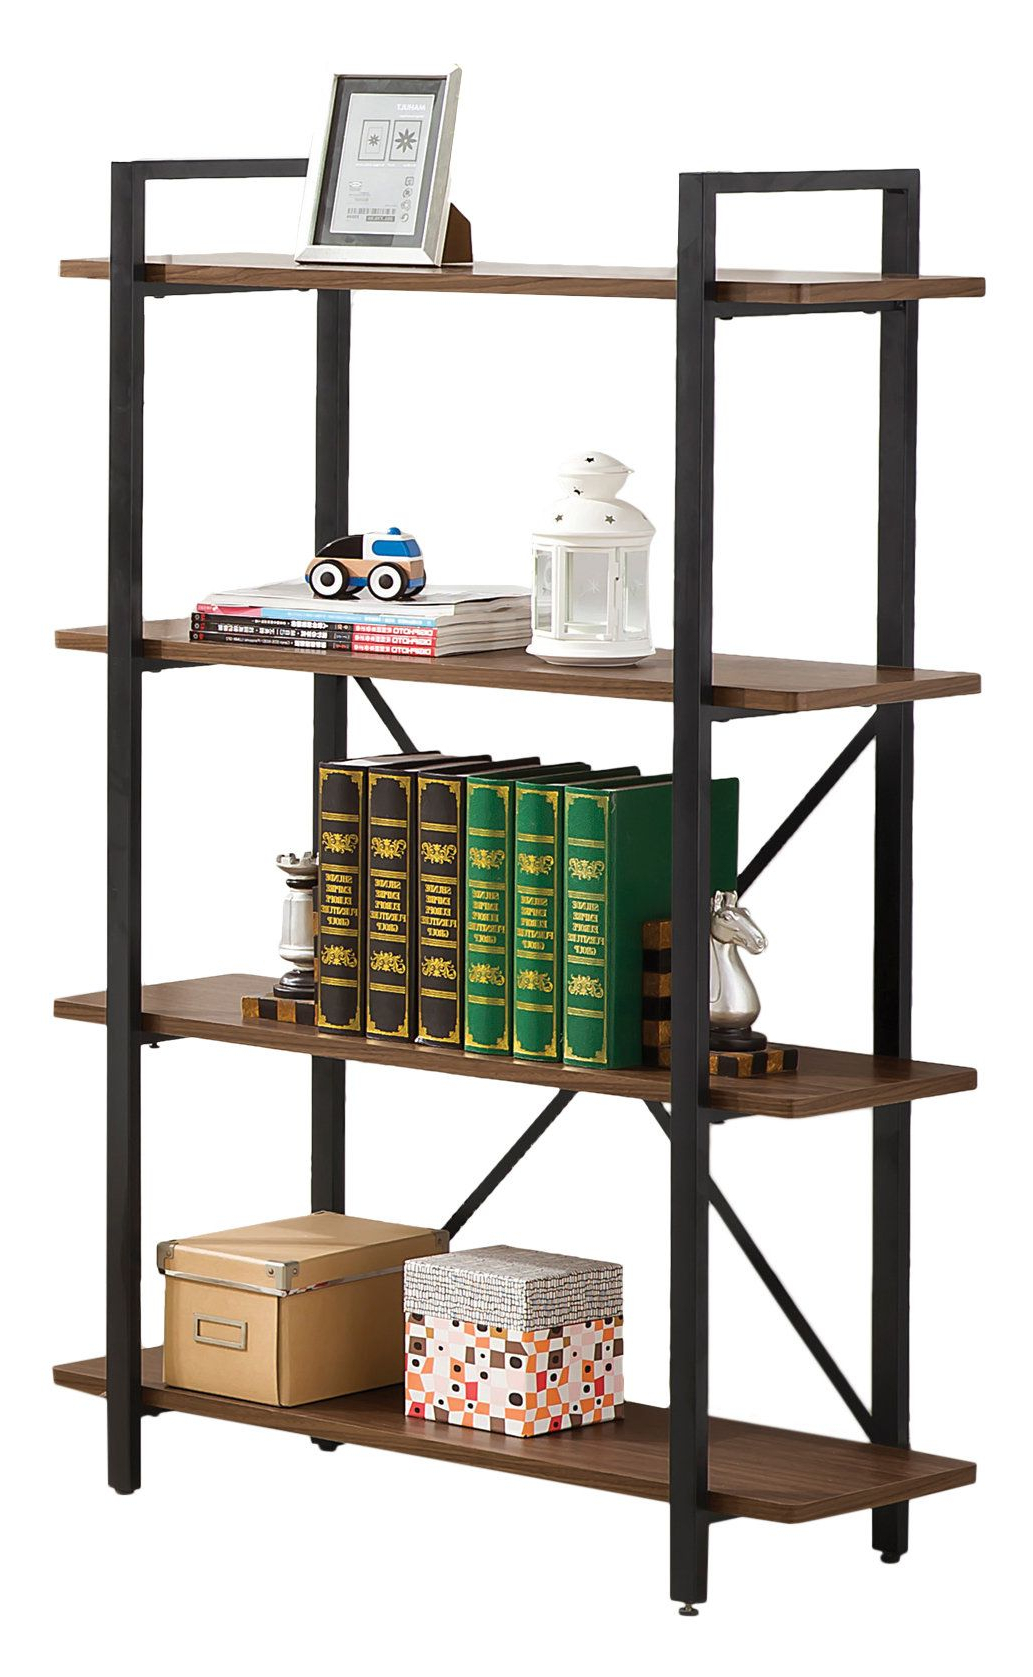 Etagere Bookcase, Black Intended For Rocklin Etagere Bookcases (View 4 of 20)